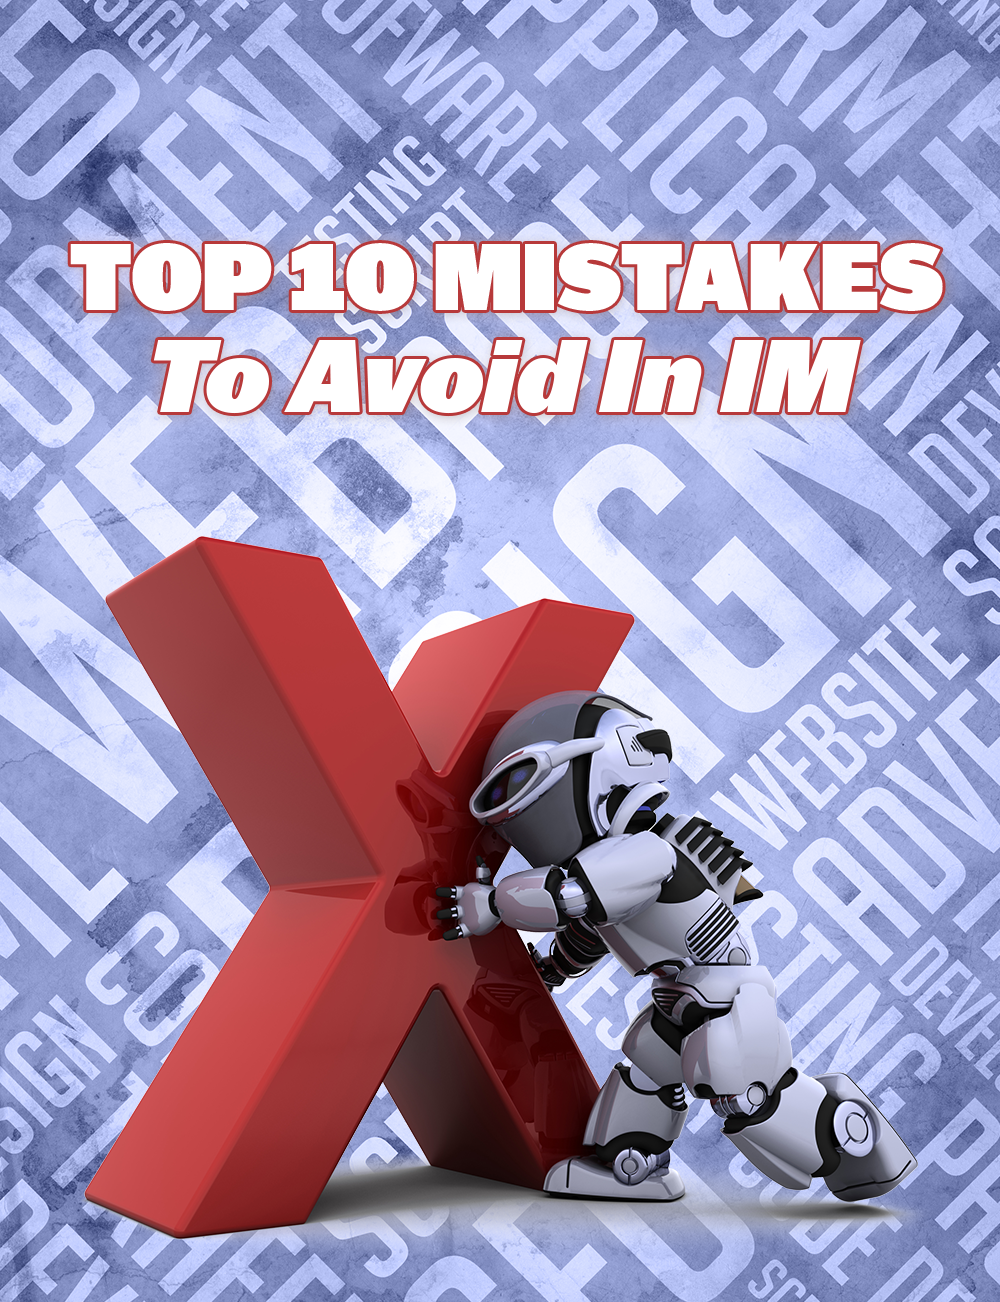 Top 10 Mistakes To Avoid In IM's Ebook Image